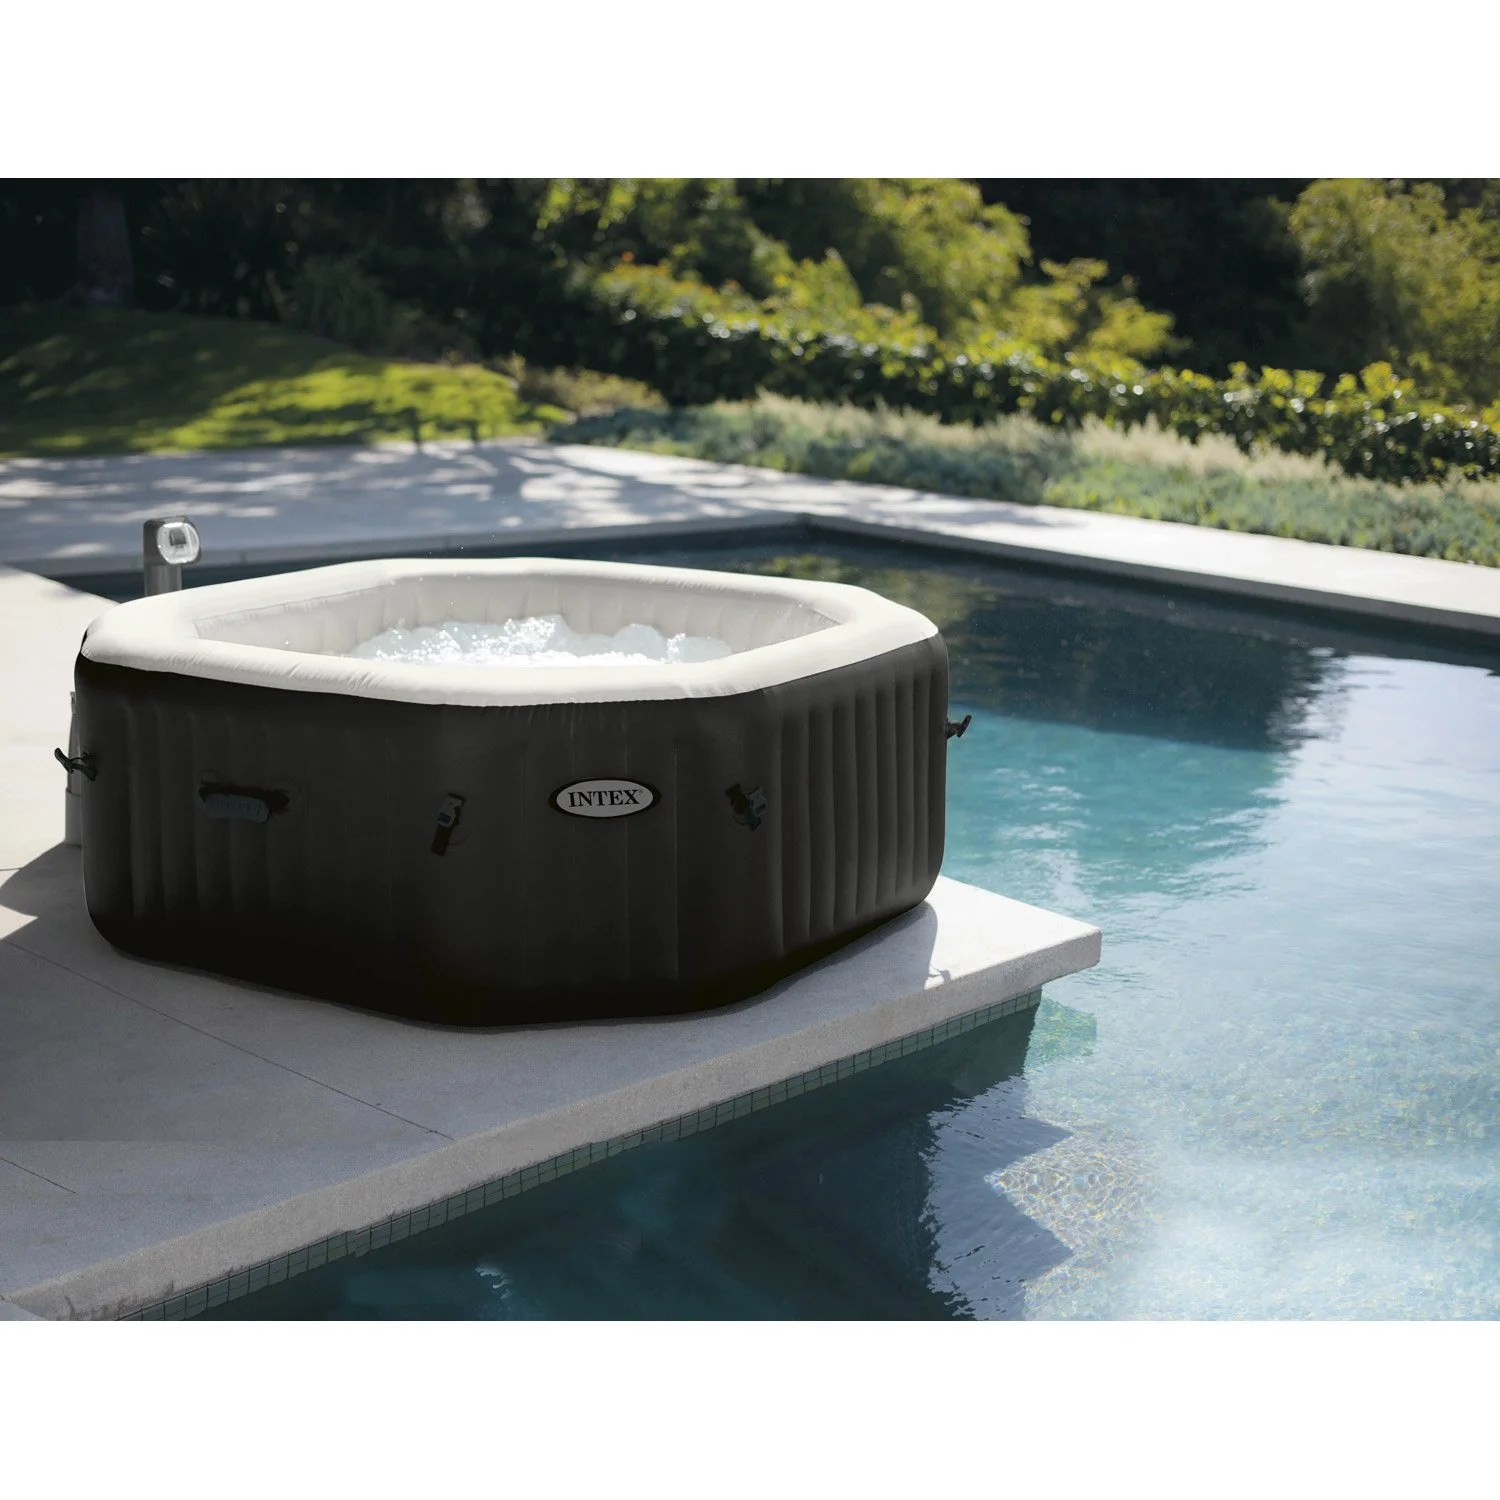 Spa Gonflable Leroy Merlin Spa Gonflable Intex Purespa Bulles Octogonale 6 Places